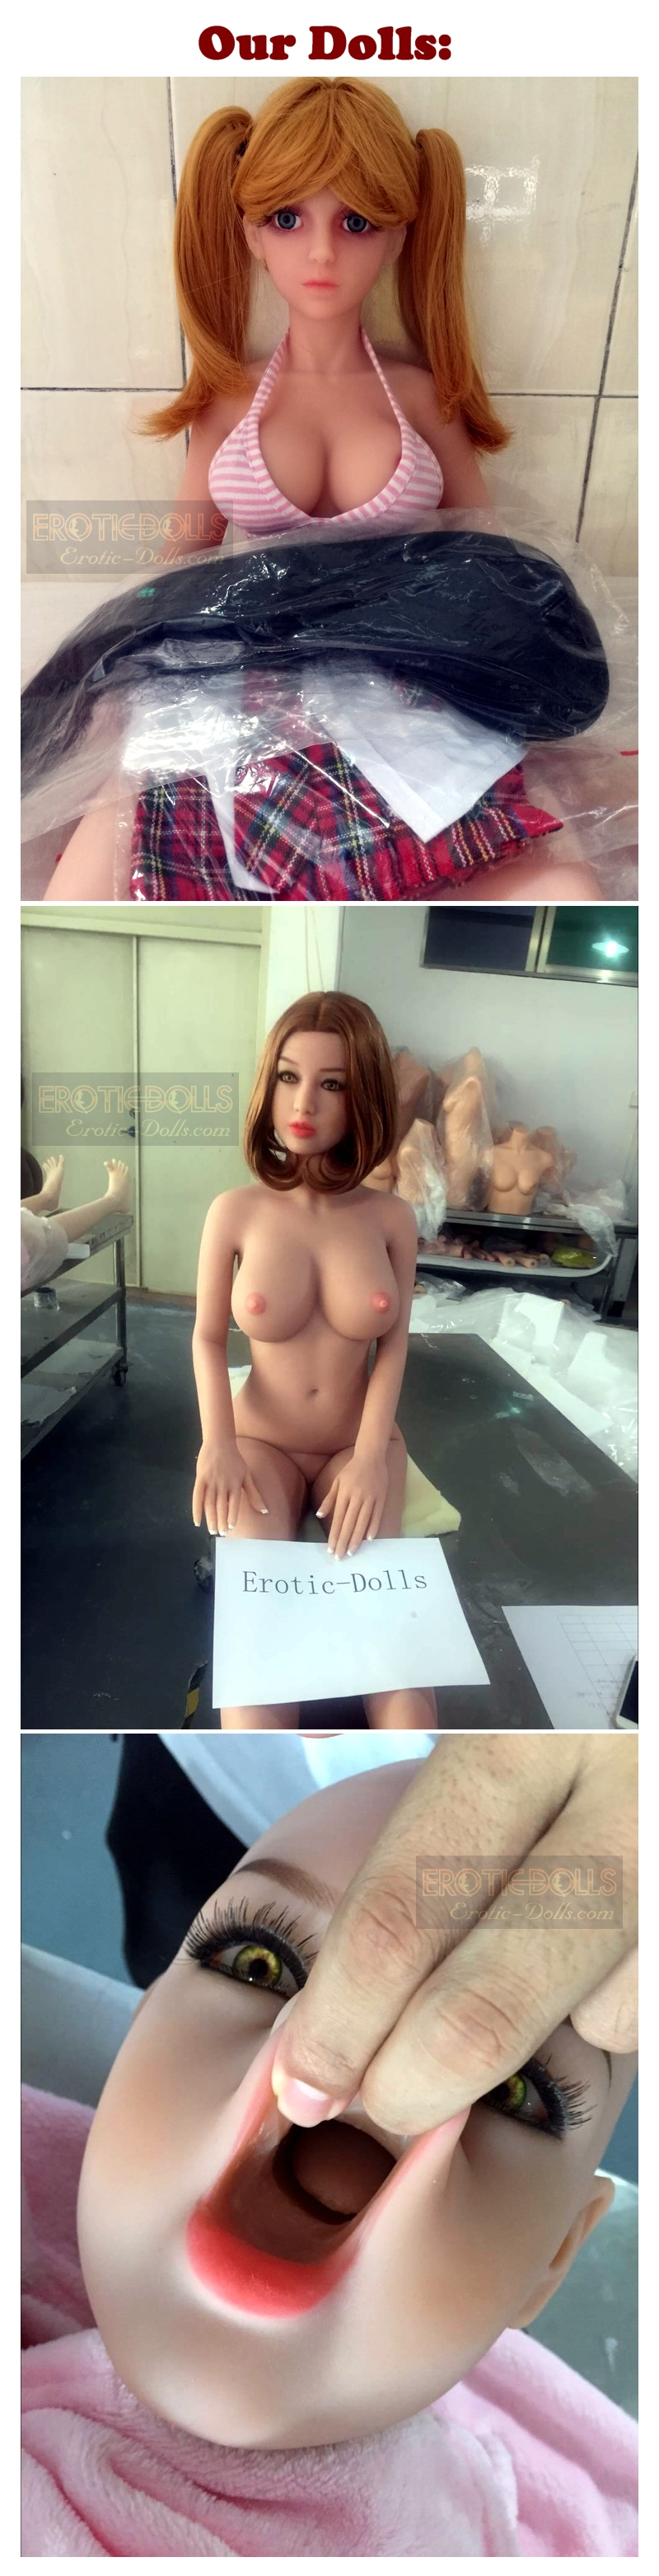 Quality - Our dolls poster EN